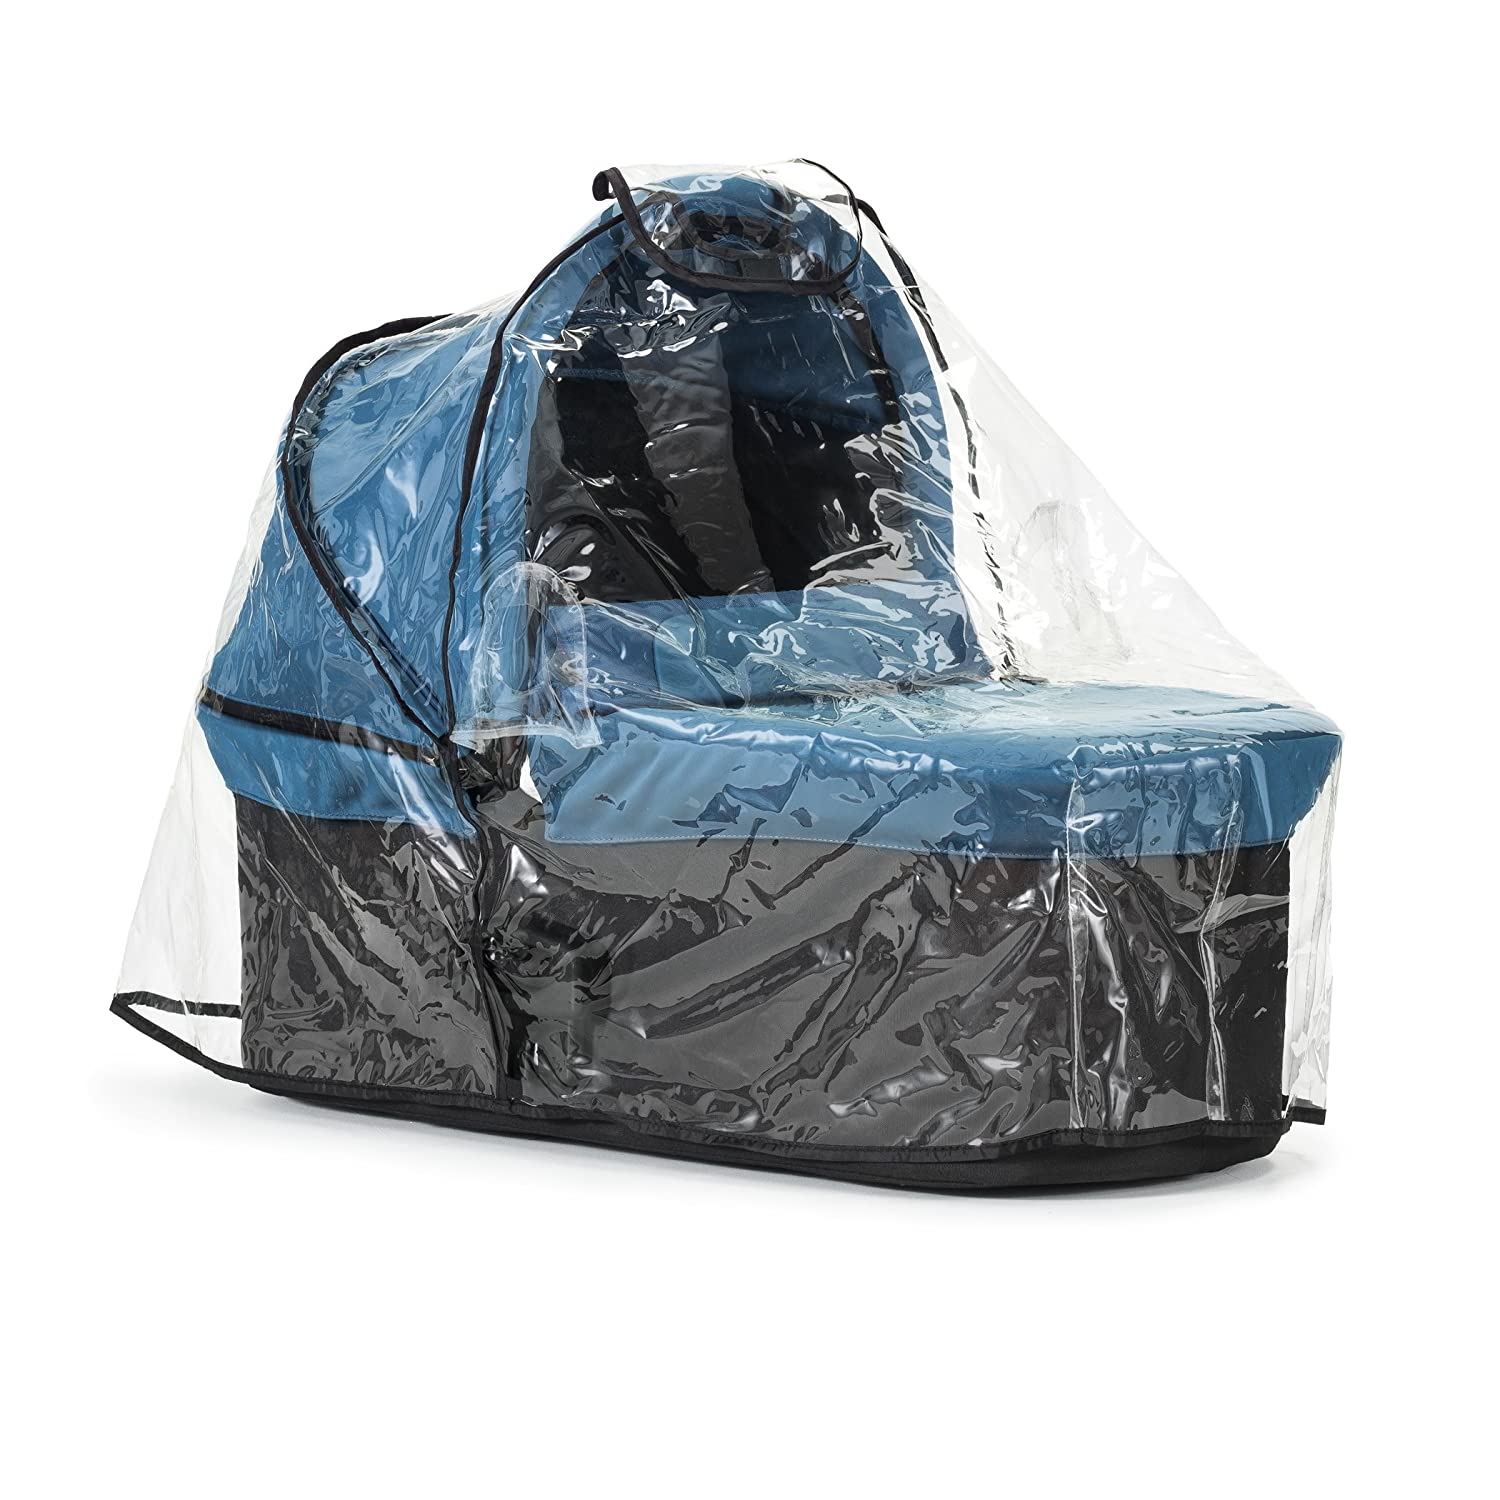 Baby Jogger Bassinet Weather Shield - Clear - One Size BJ95051